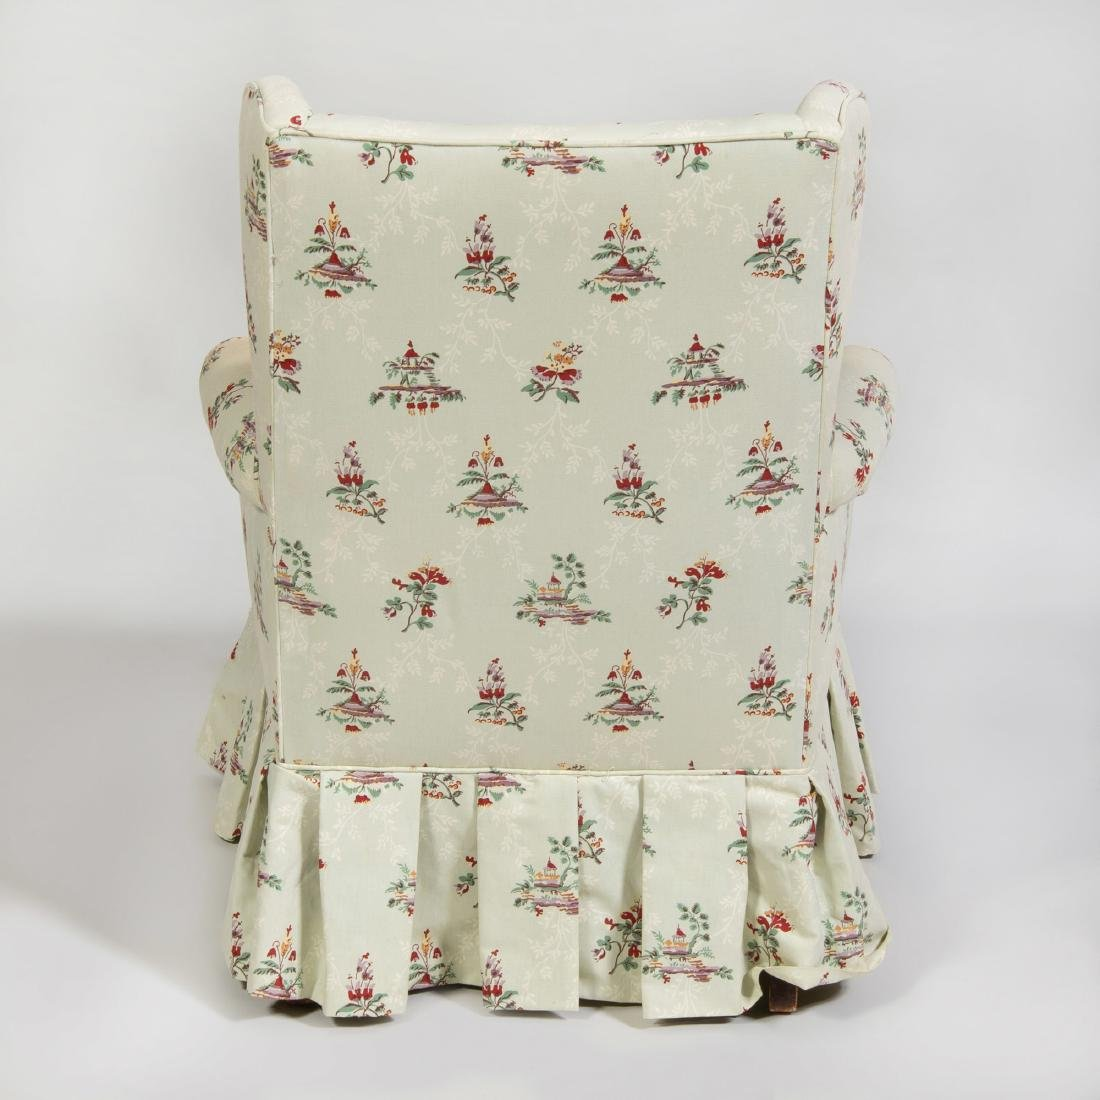 Linen Upholstered Wing Chair - 2